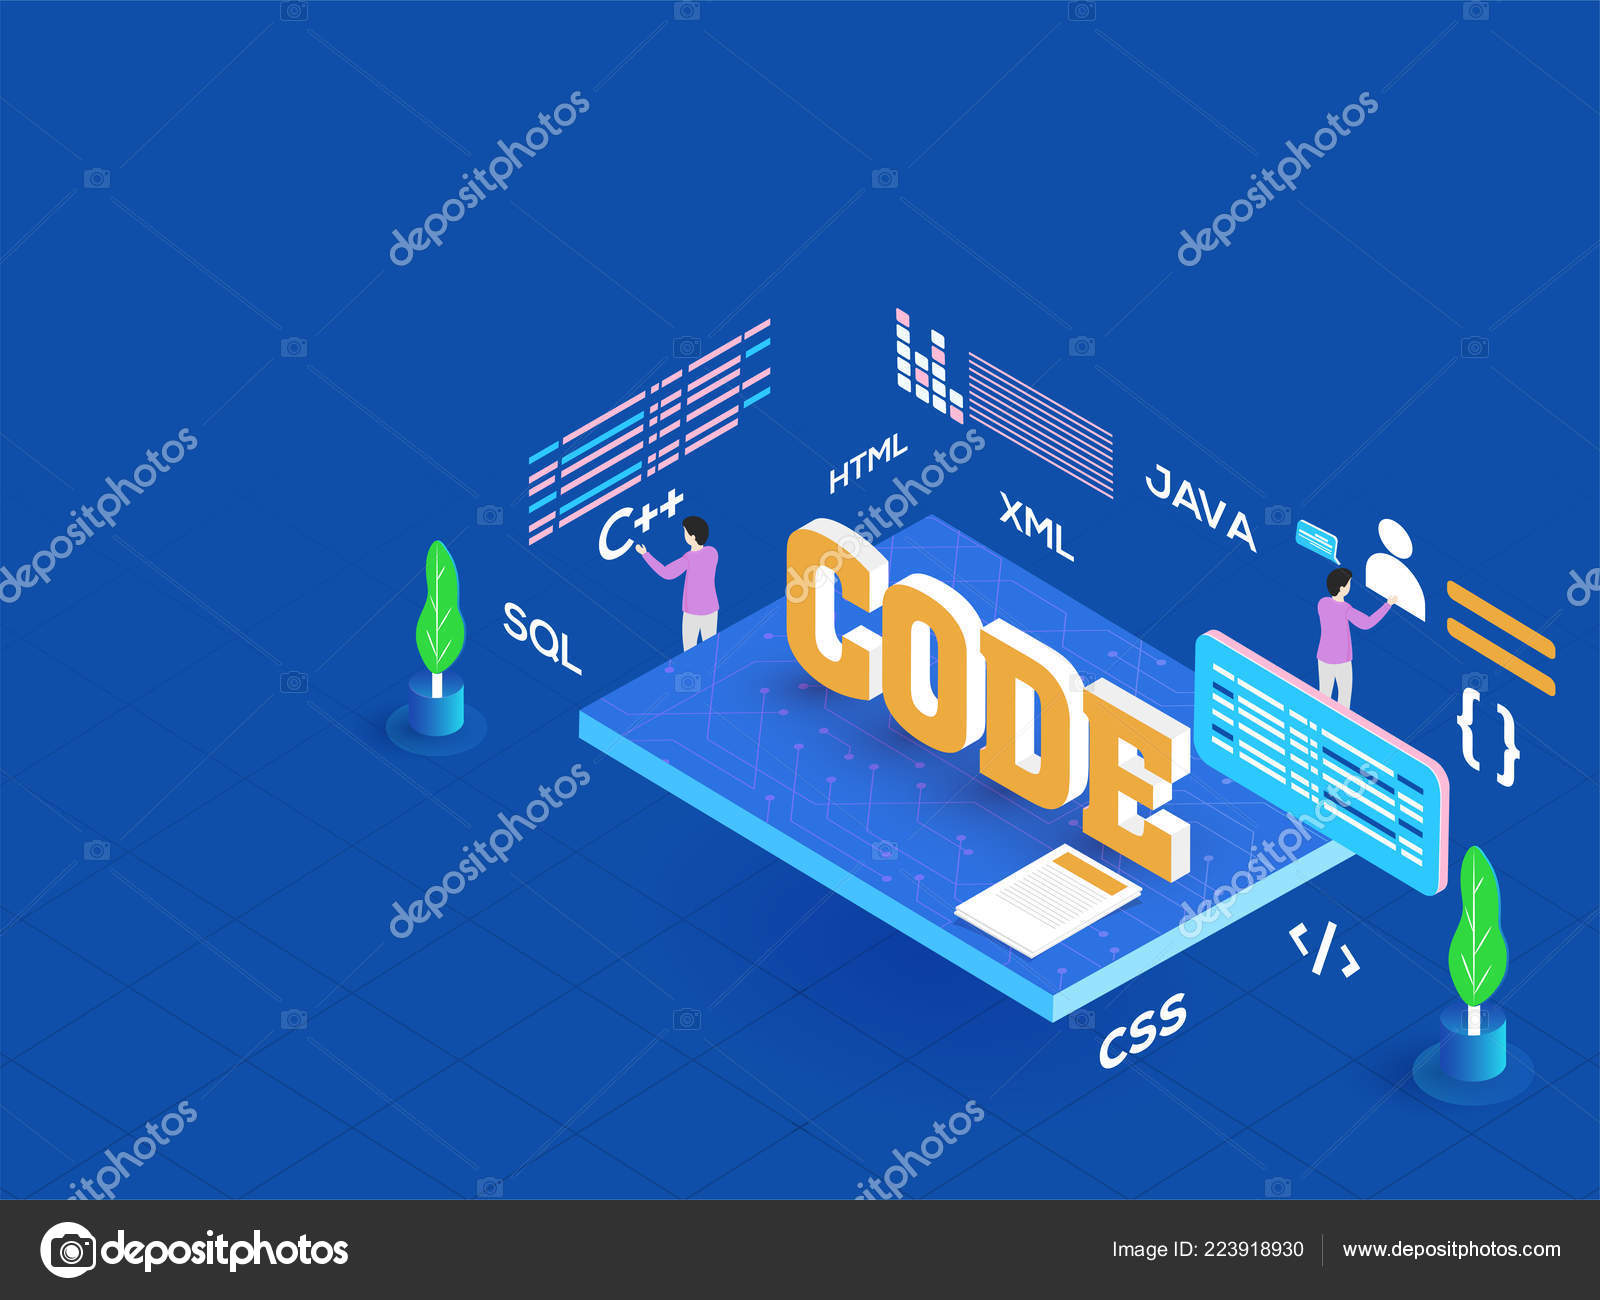 Text Code Miniature Developers Working Different Projects